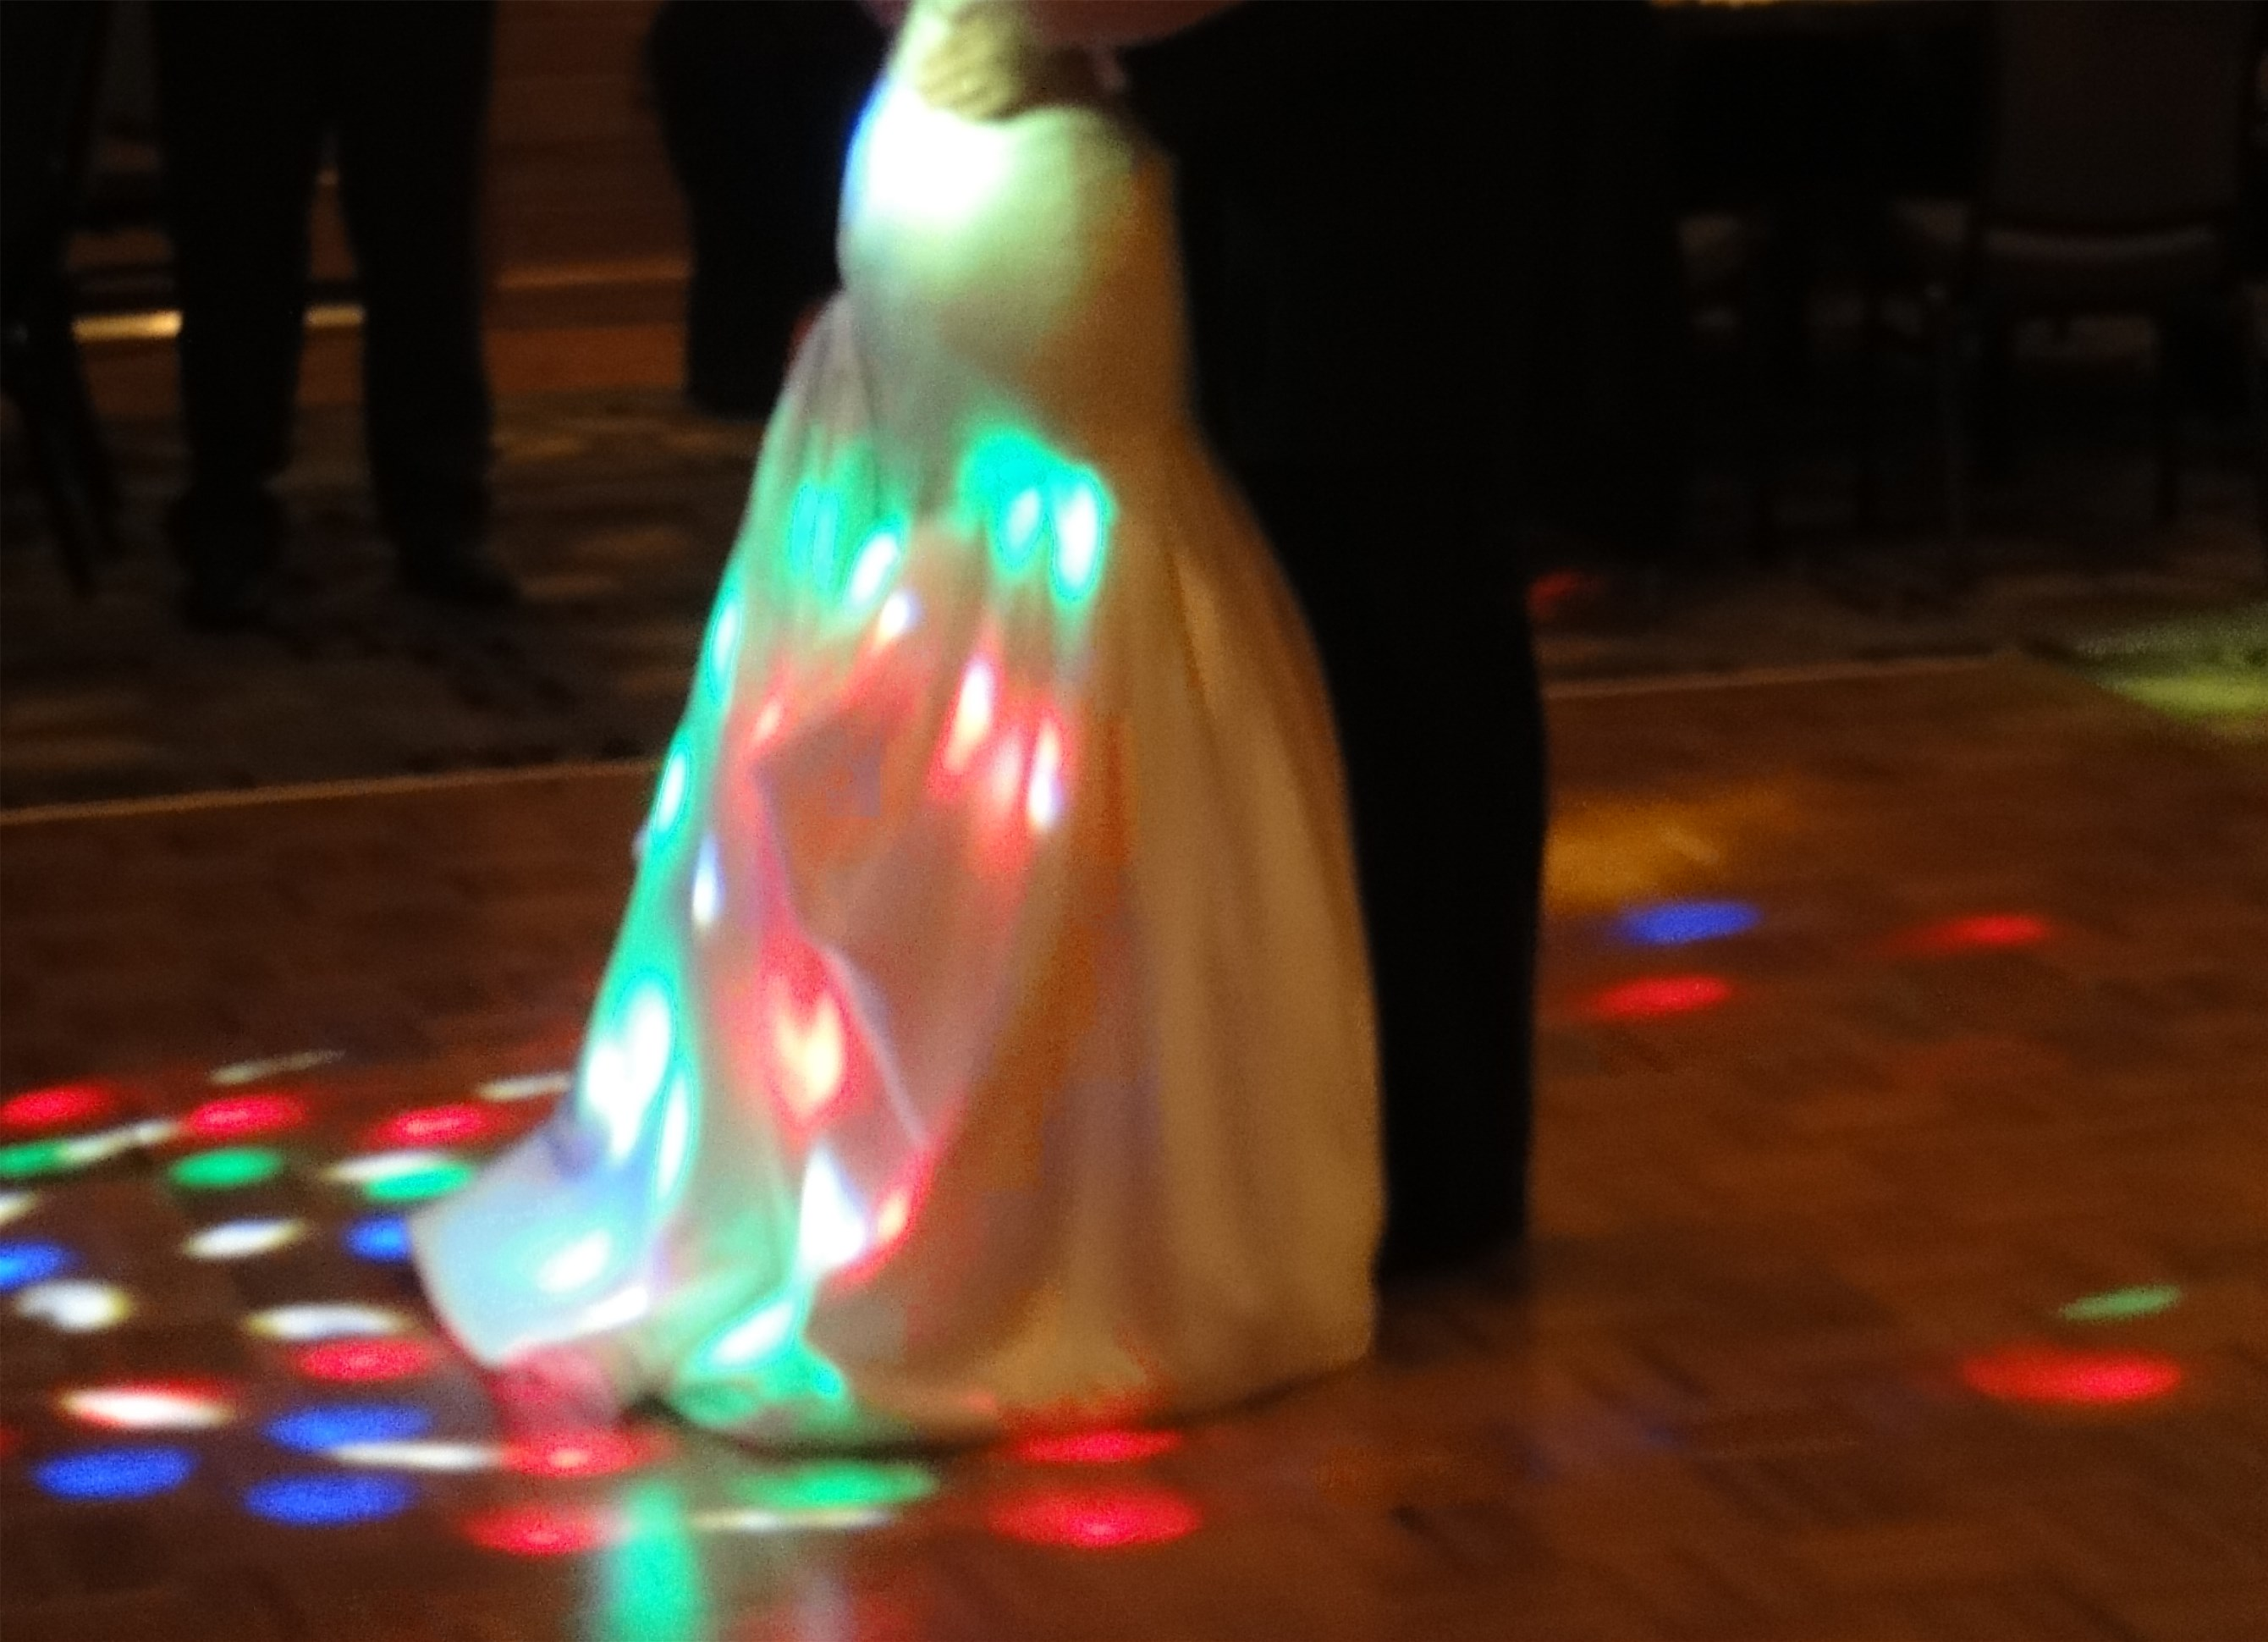 planning a wedding - Knoxville DJs